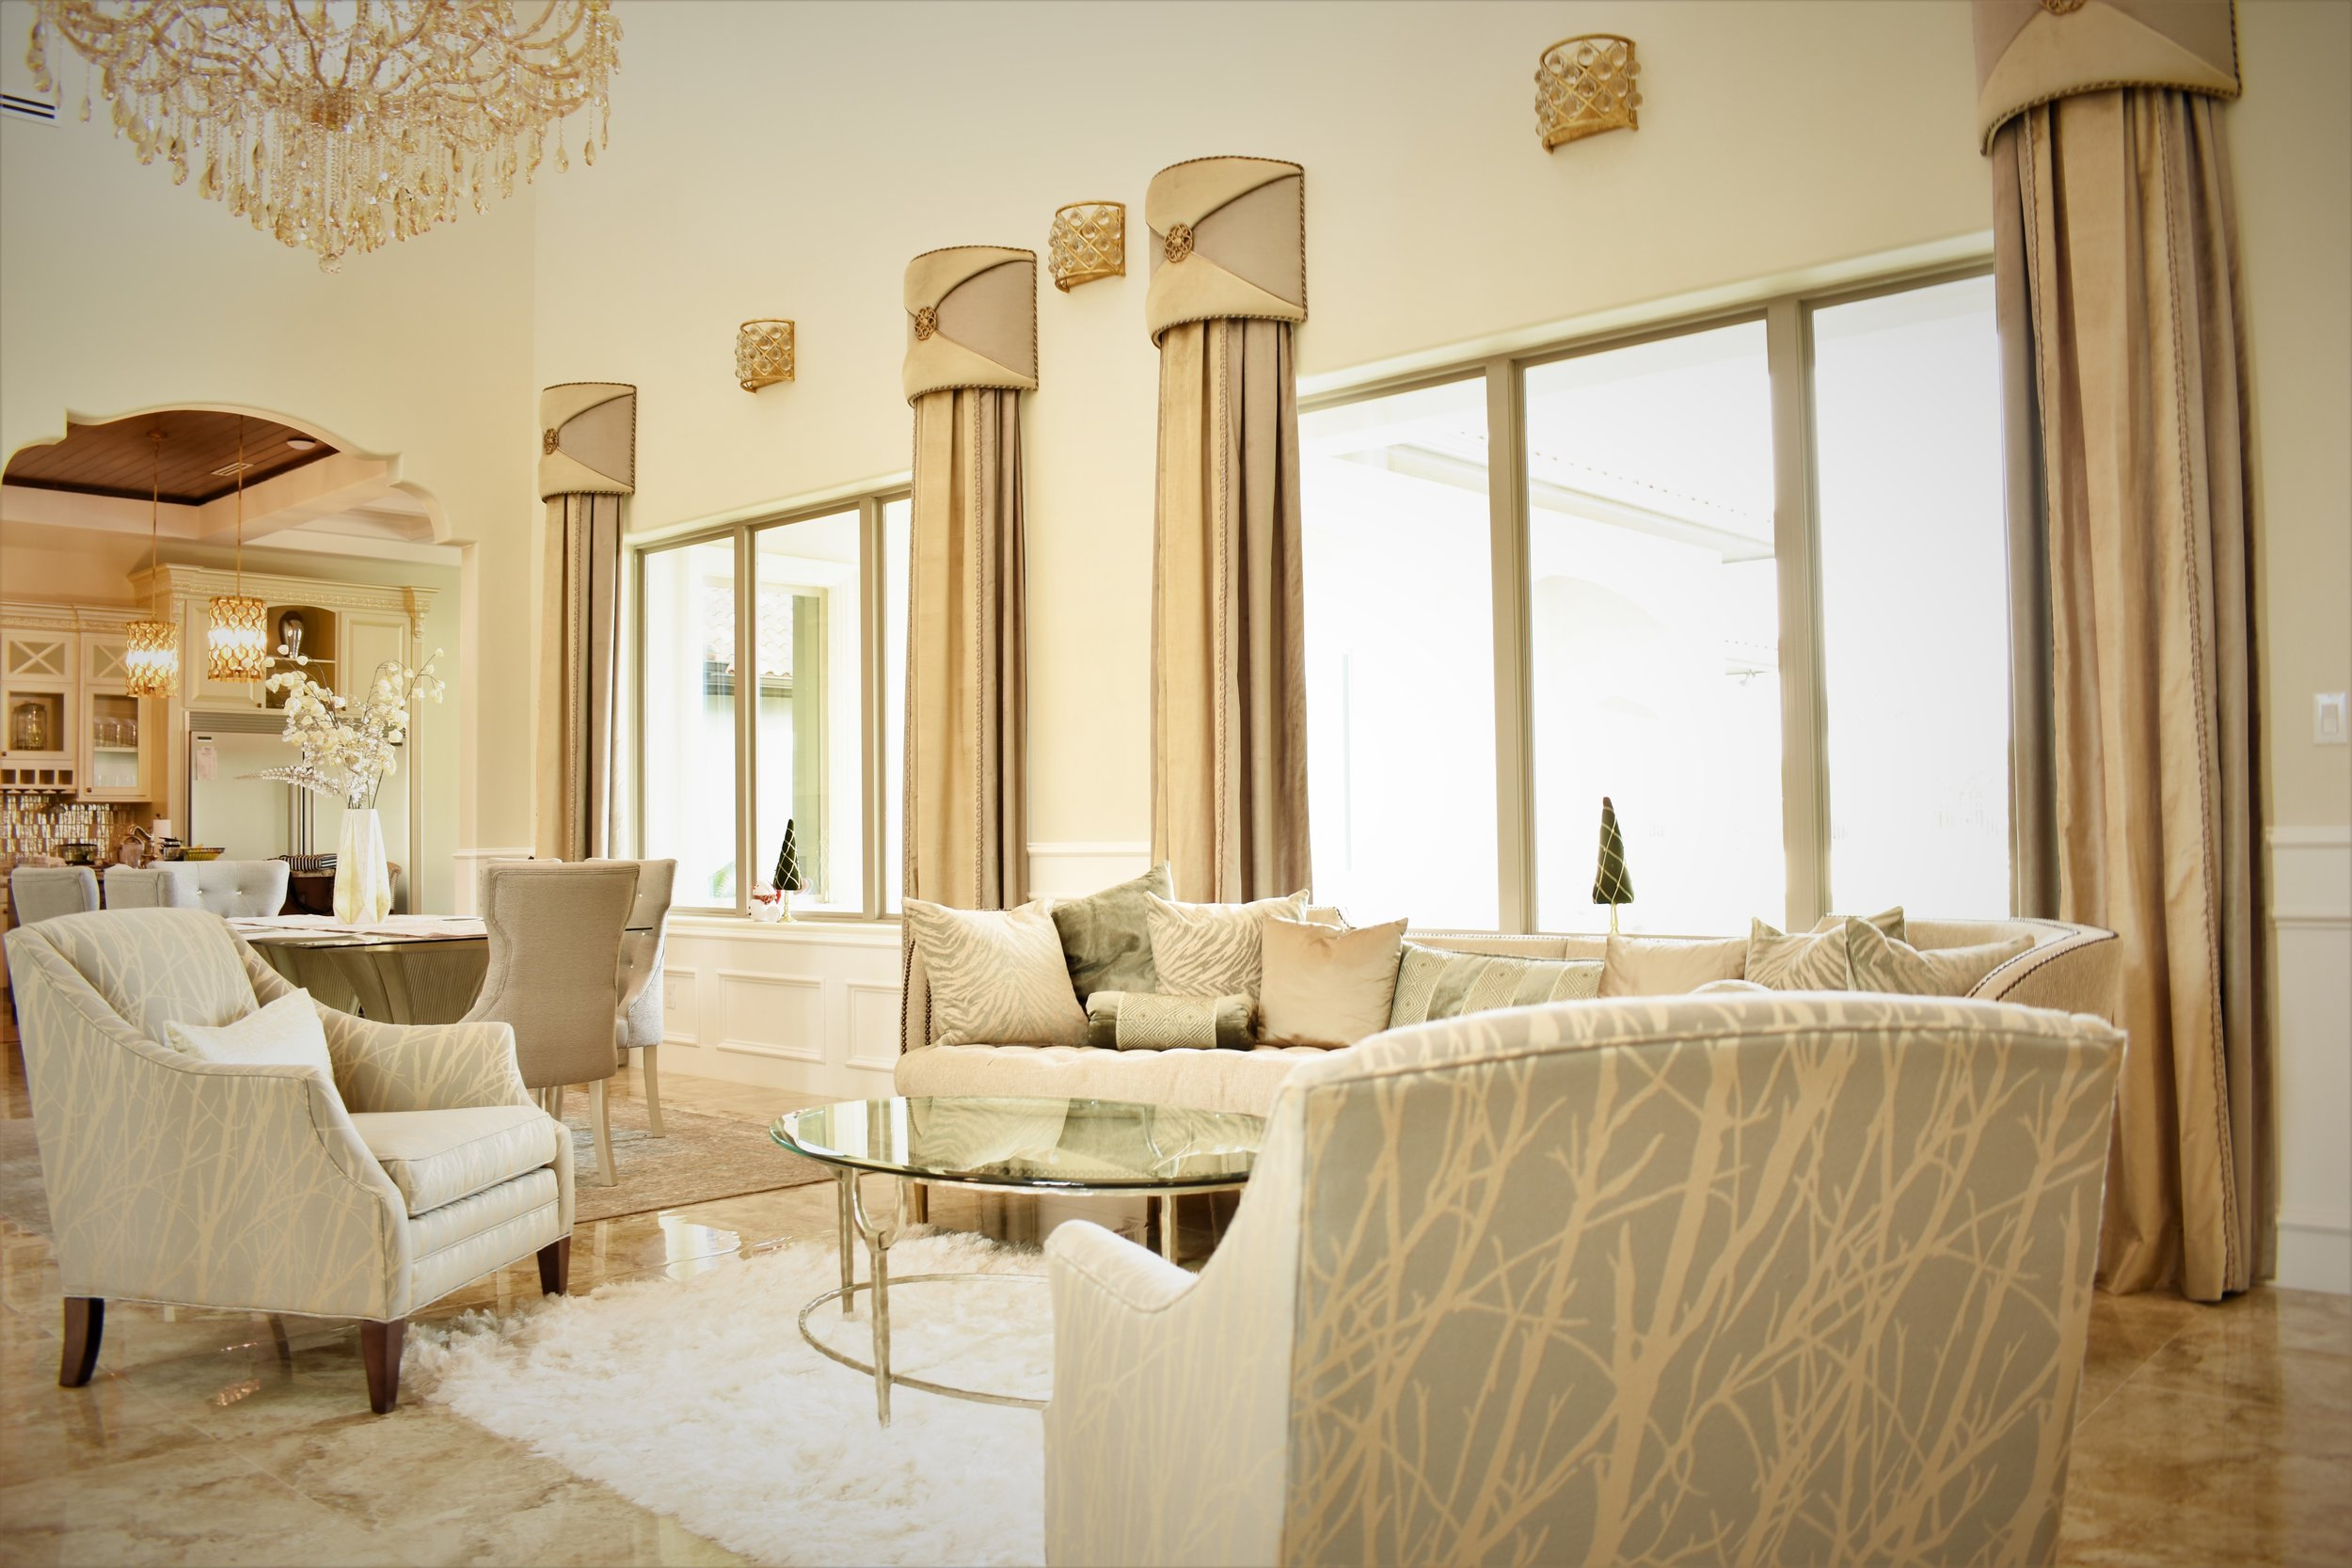 Custom Design Window Treatments by Alejandra Canales Ac Design Studio Custom Drapes and Shades Motorized Window coverings in McAllen Texas (8).JPG